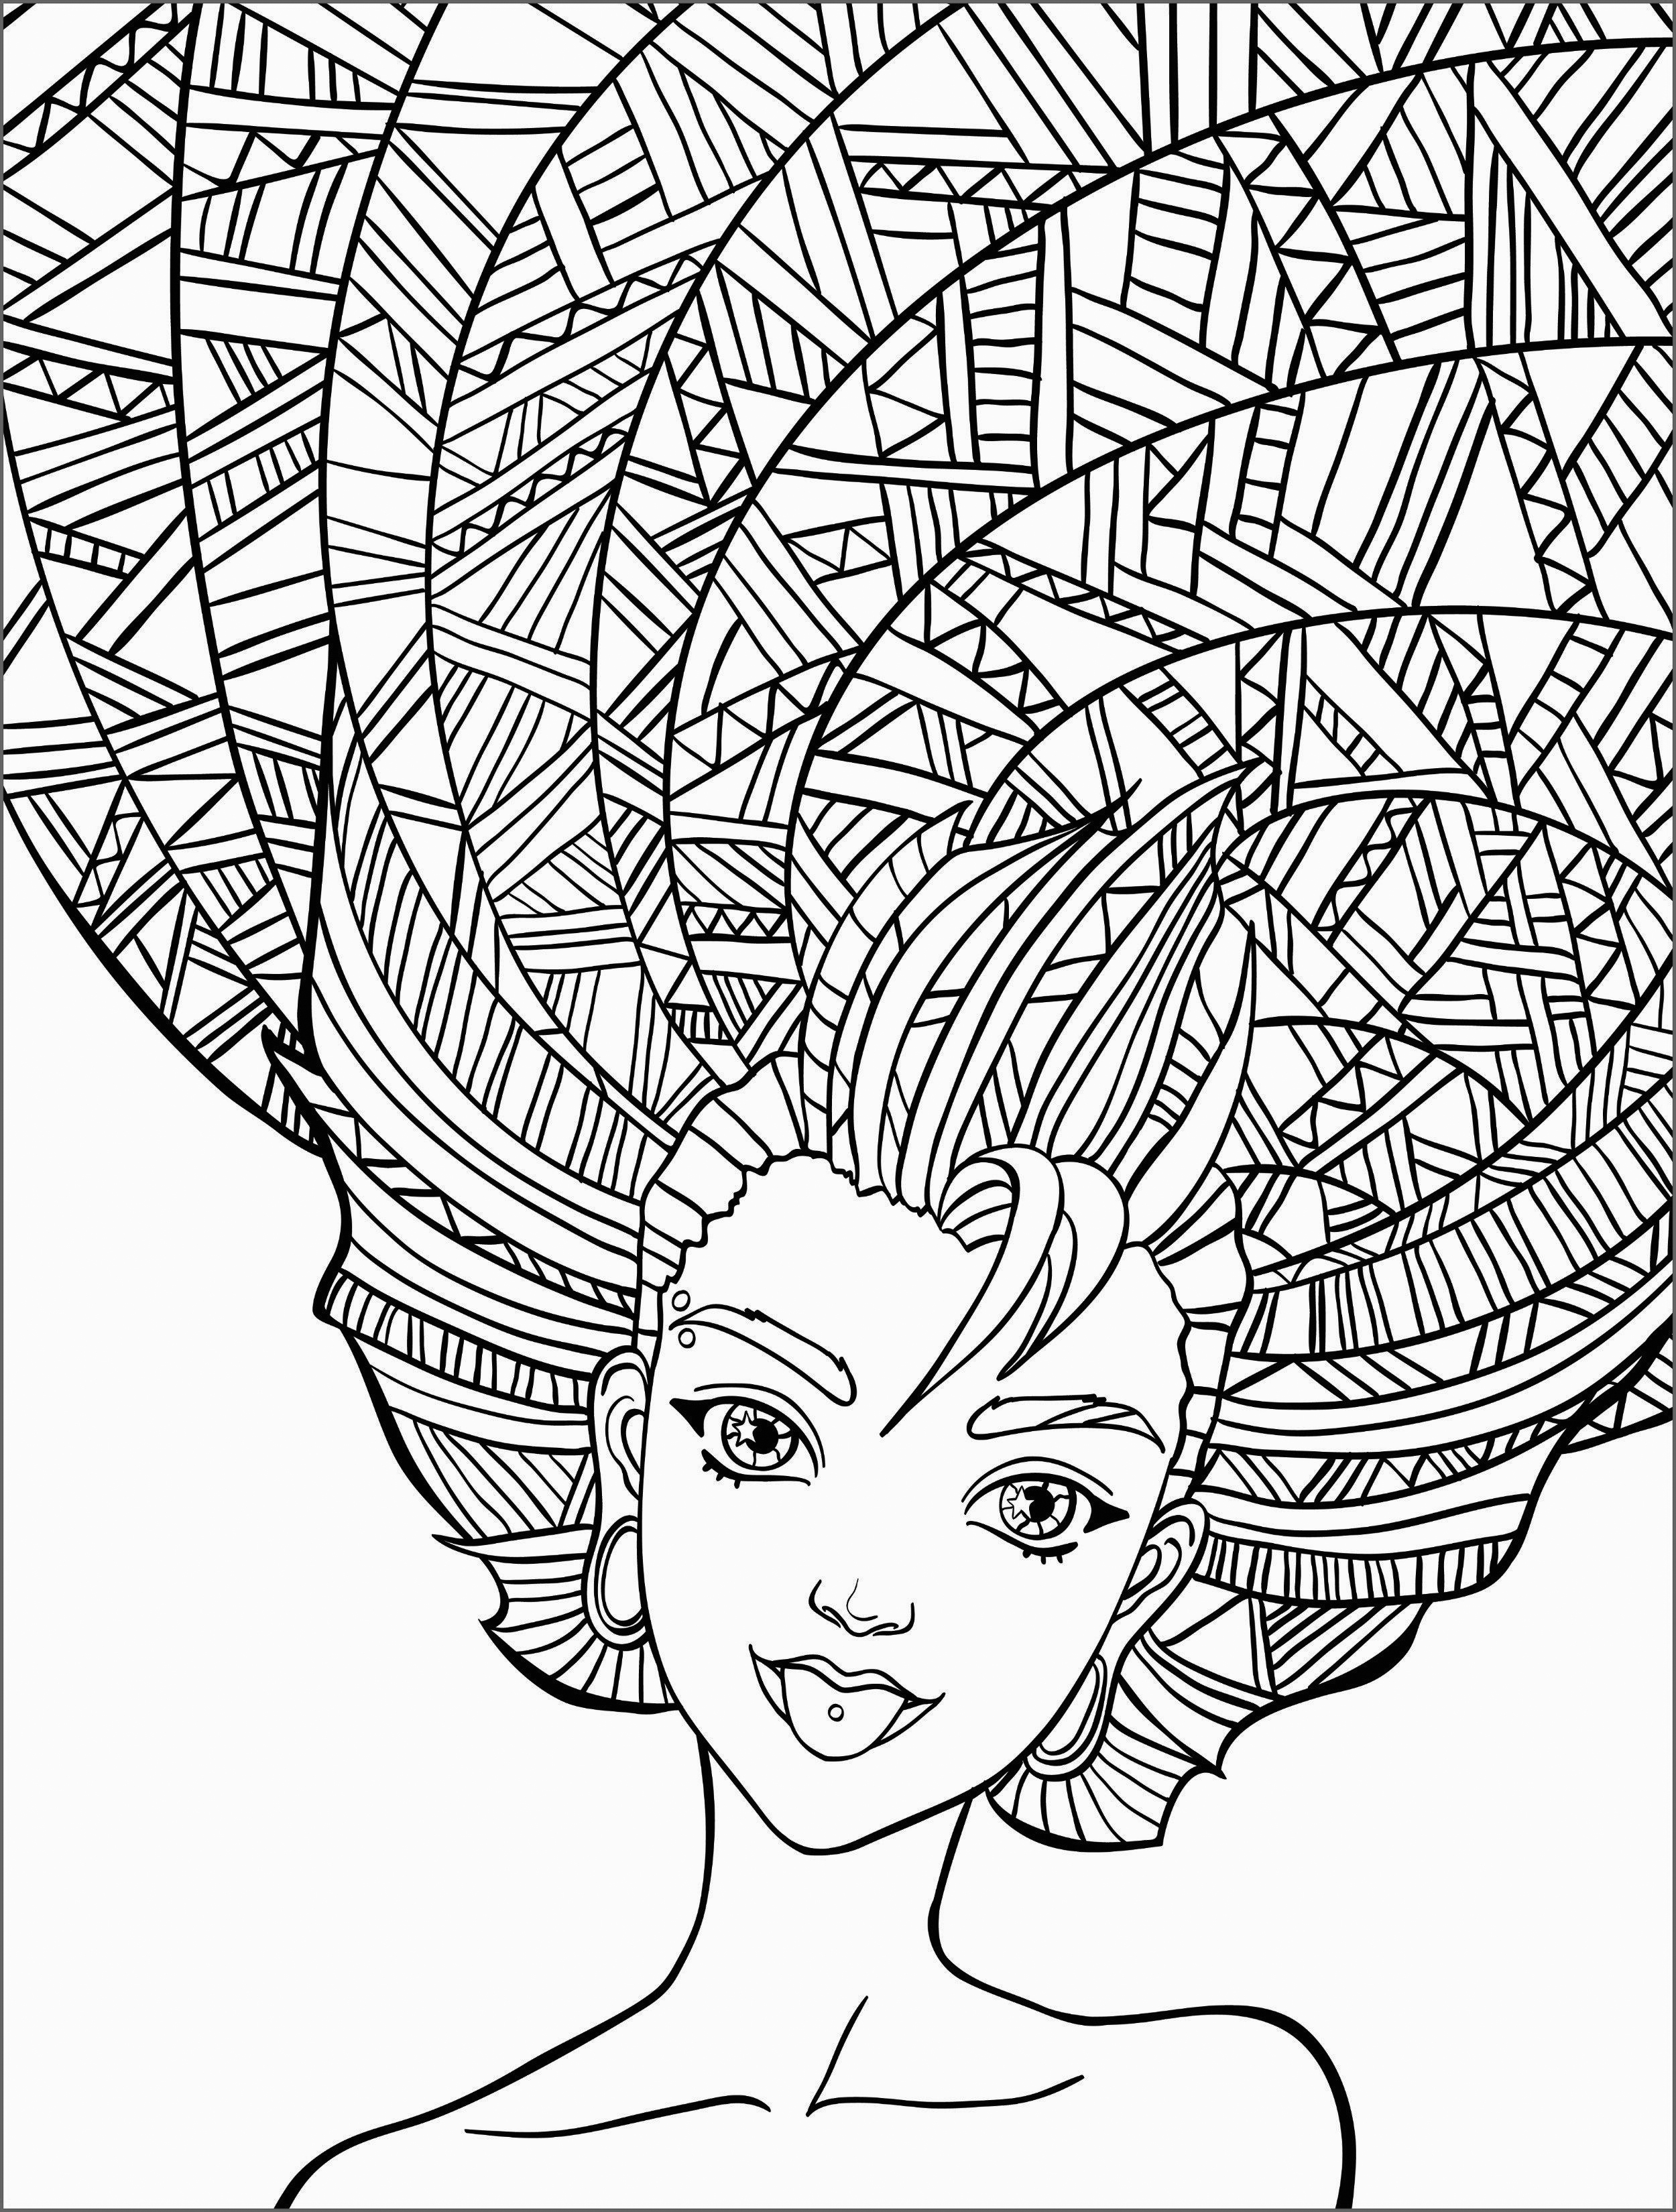 free printable pages coloring pages for adults best coloring pages for kids pages free printable